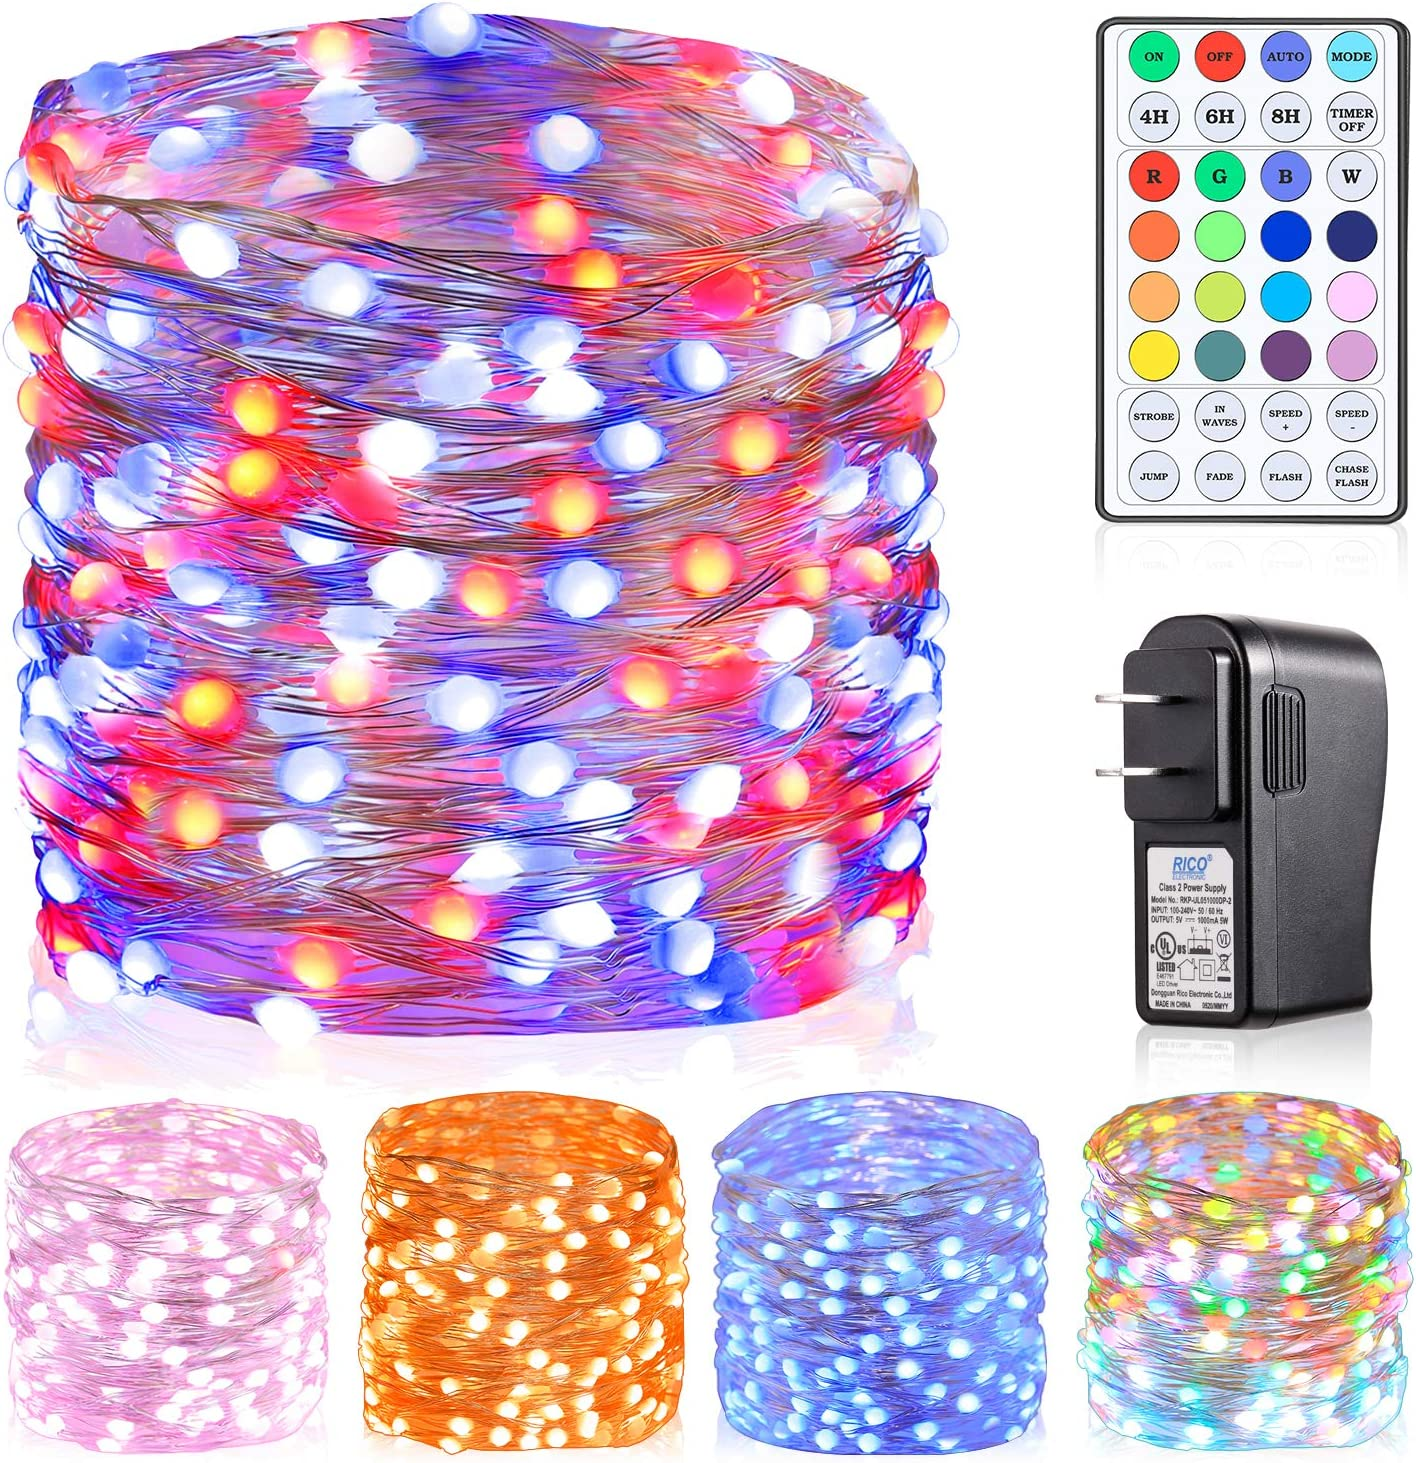 Krislait Color Changing Fairy Lights for Bedroom with Remote USB Plug in Transformer RGB Fairy String Light Outdoor for Christmas Tree, Wedding, Porch, Deck, Ceiling, Garden, Tapestry 33 ft 100 LED